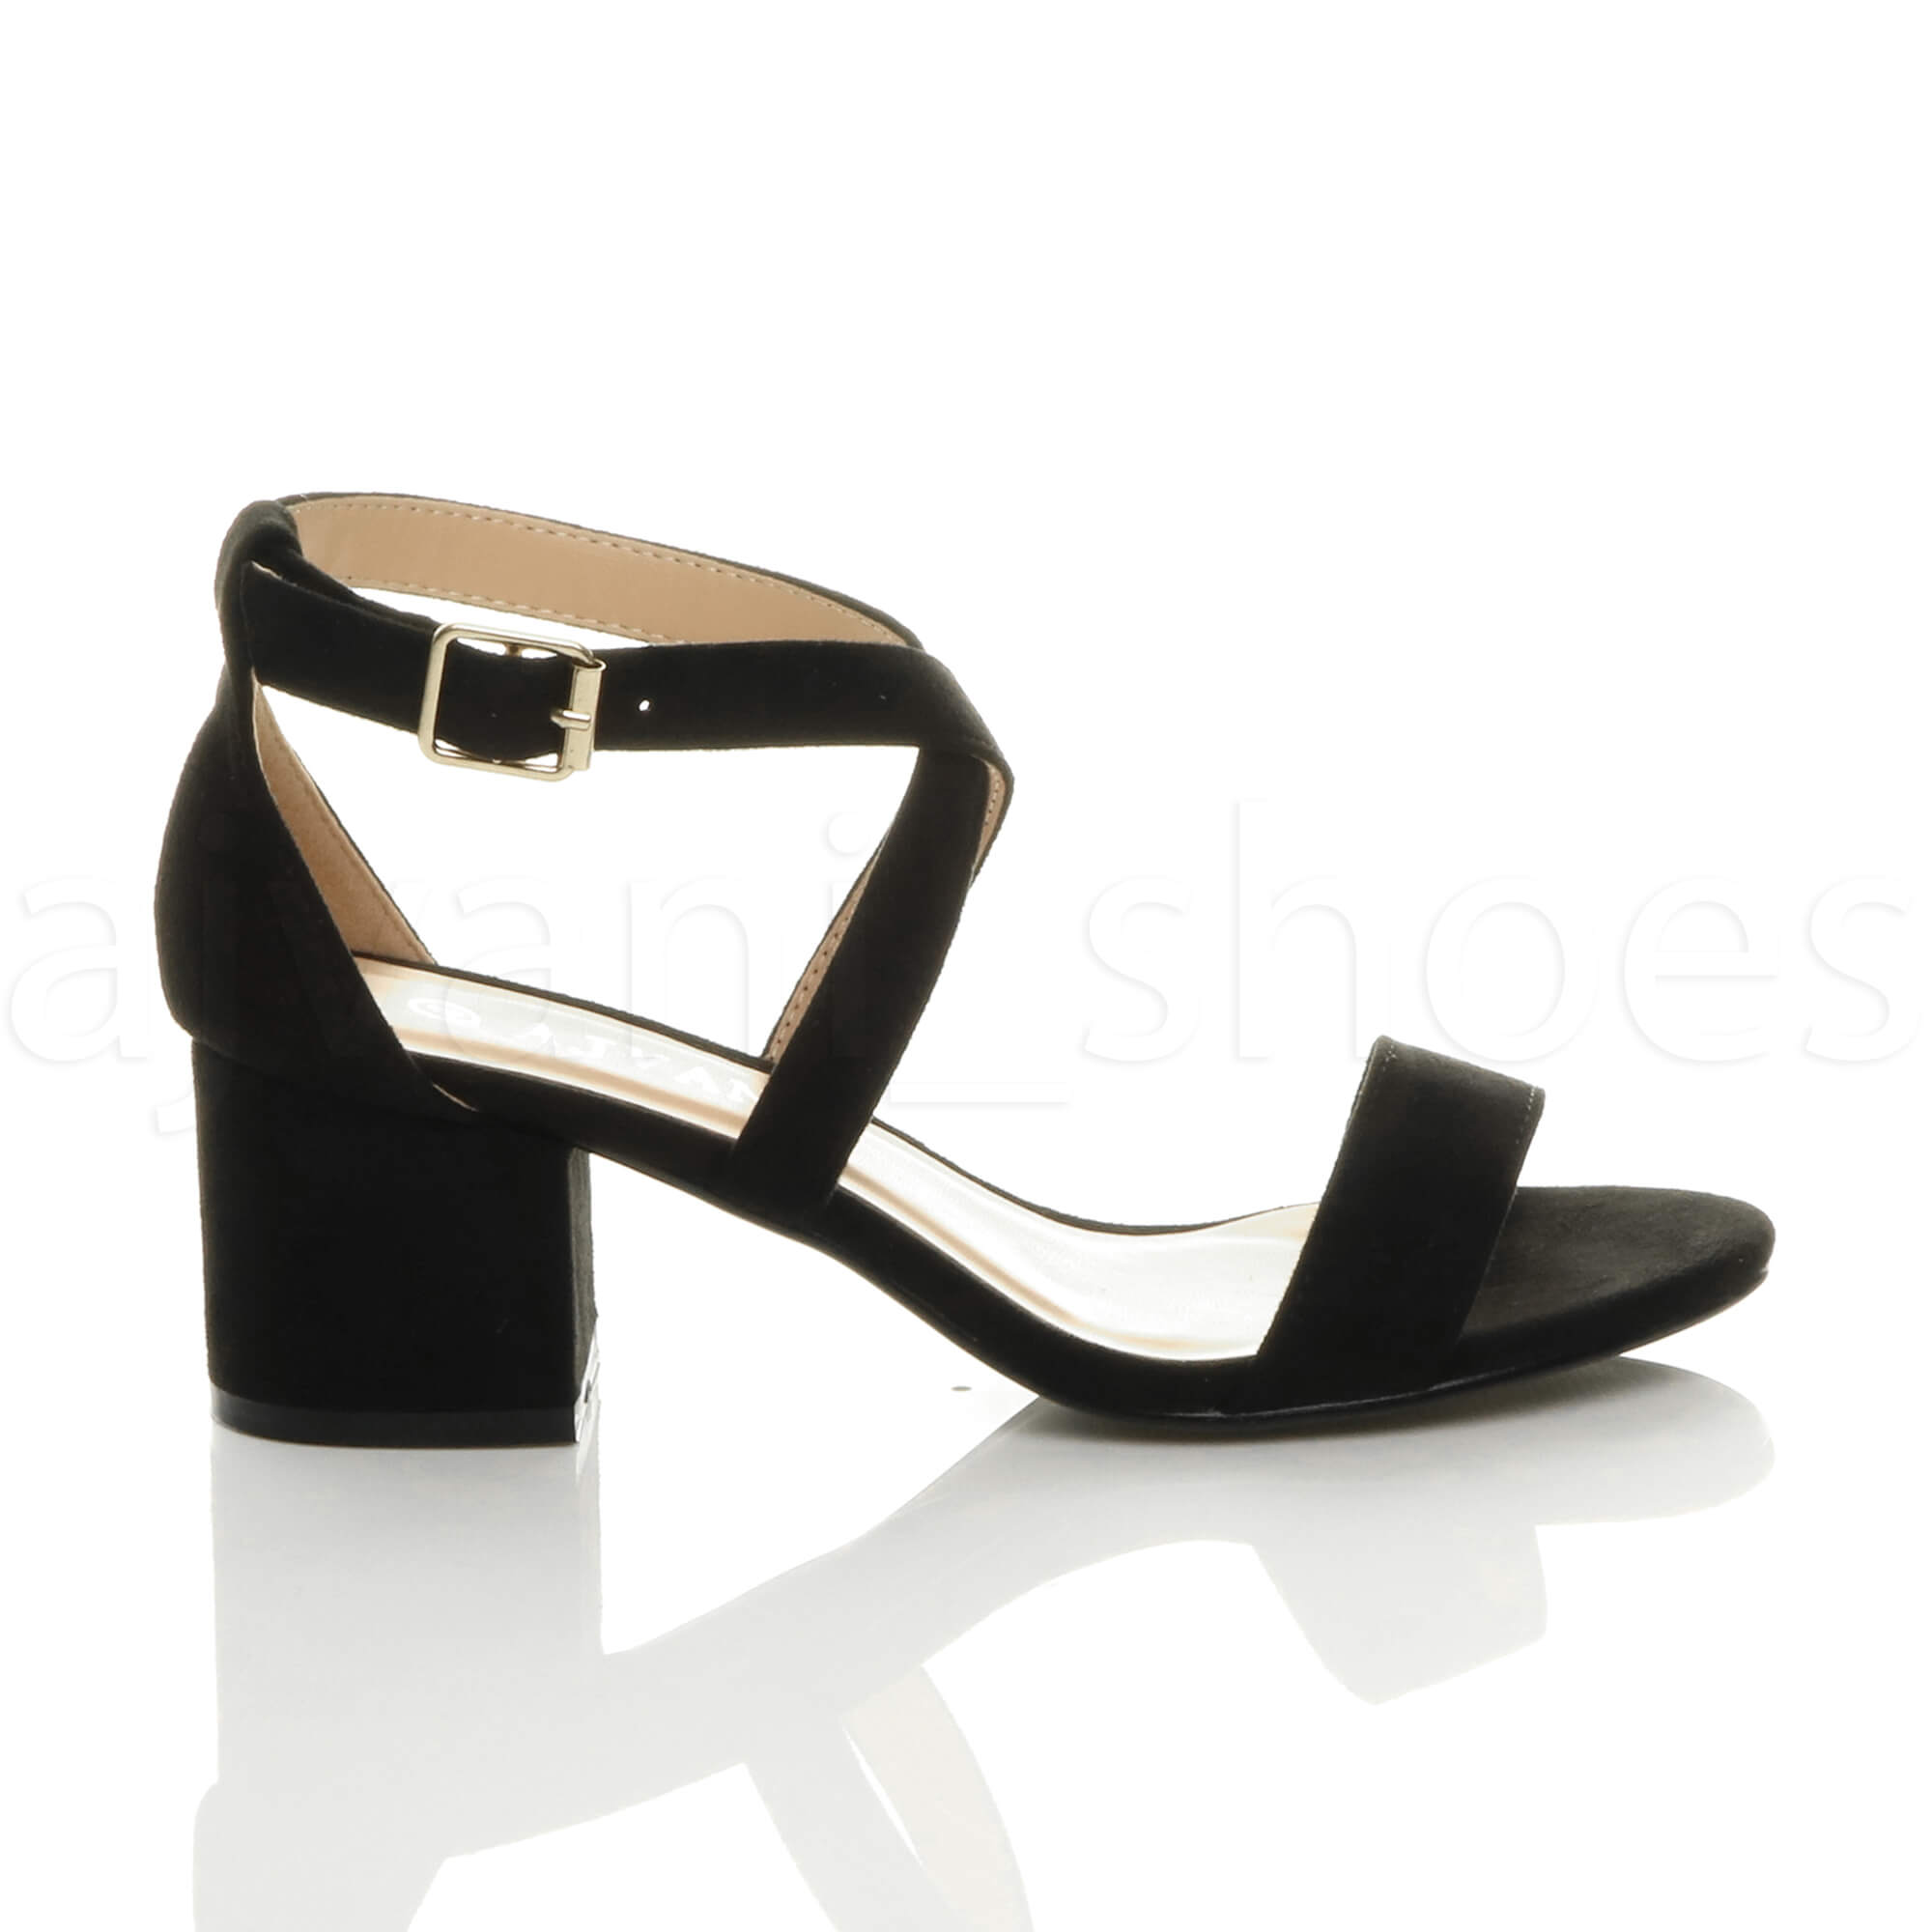 WOMENS-LADIES-MID-LOW-BLOCK-HEEL-CROSS-STRAPS-PARTY-STRAPPY-SANDALS-SHOES-SIZE thumbnail 5